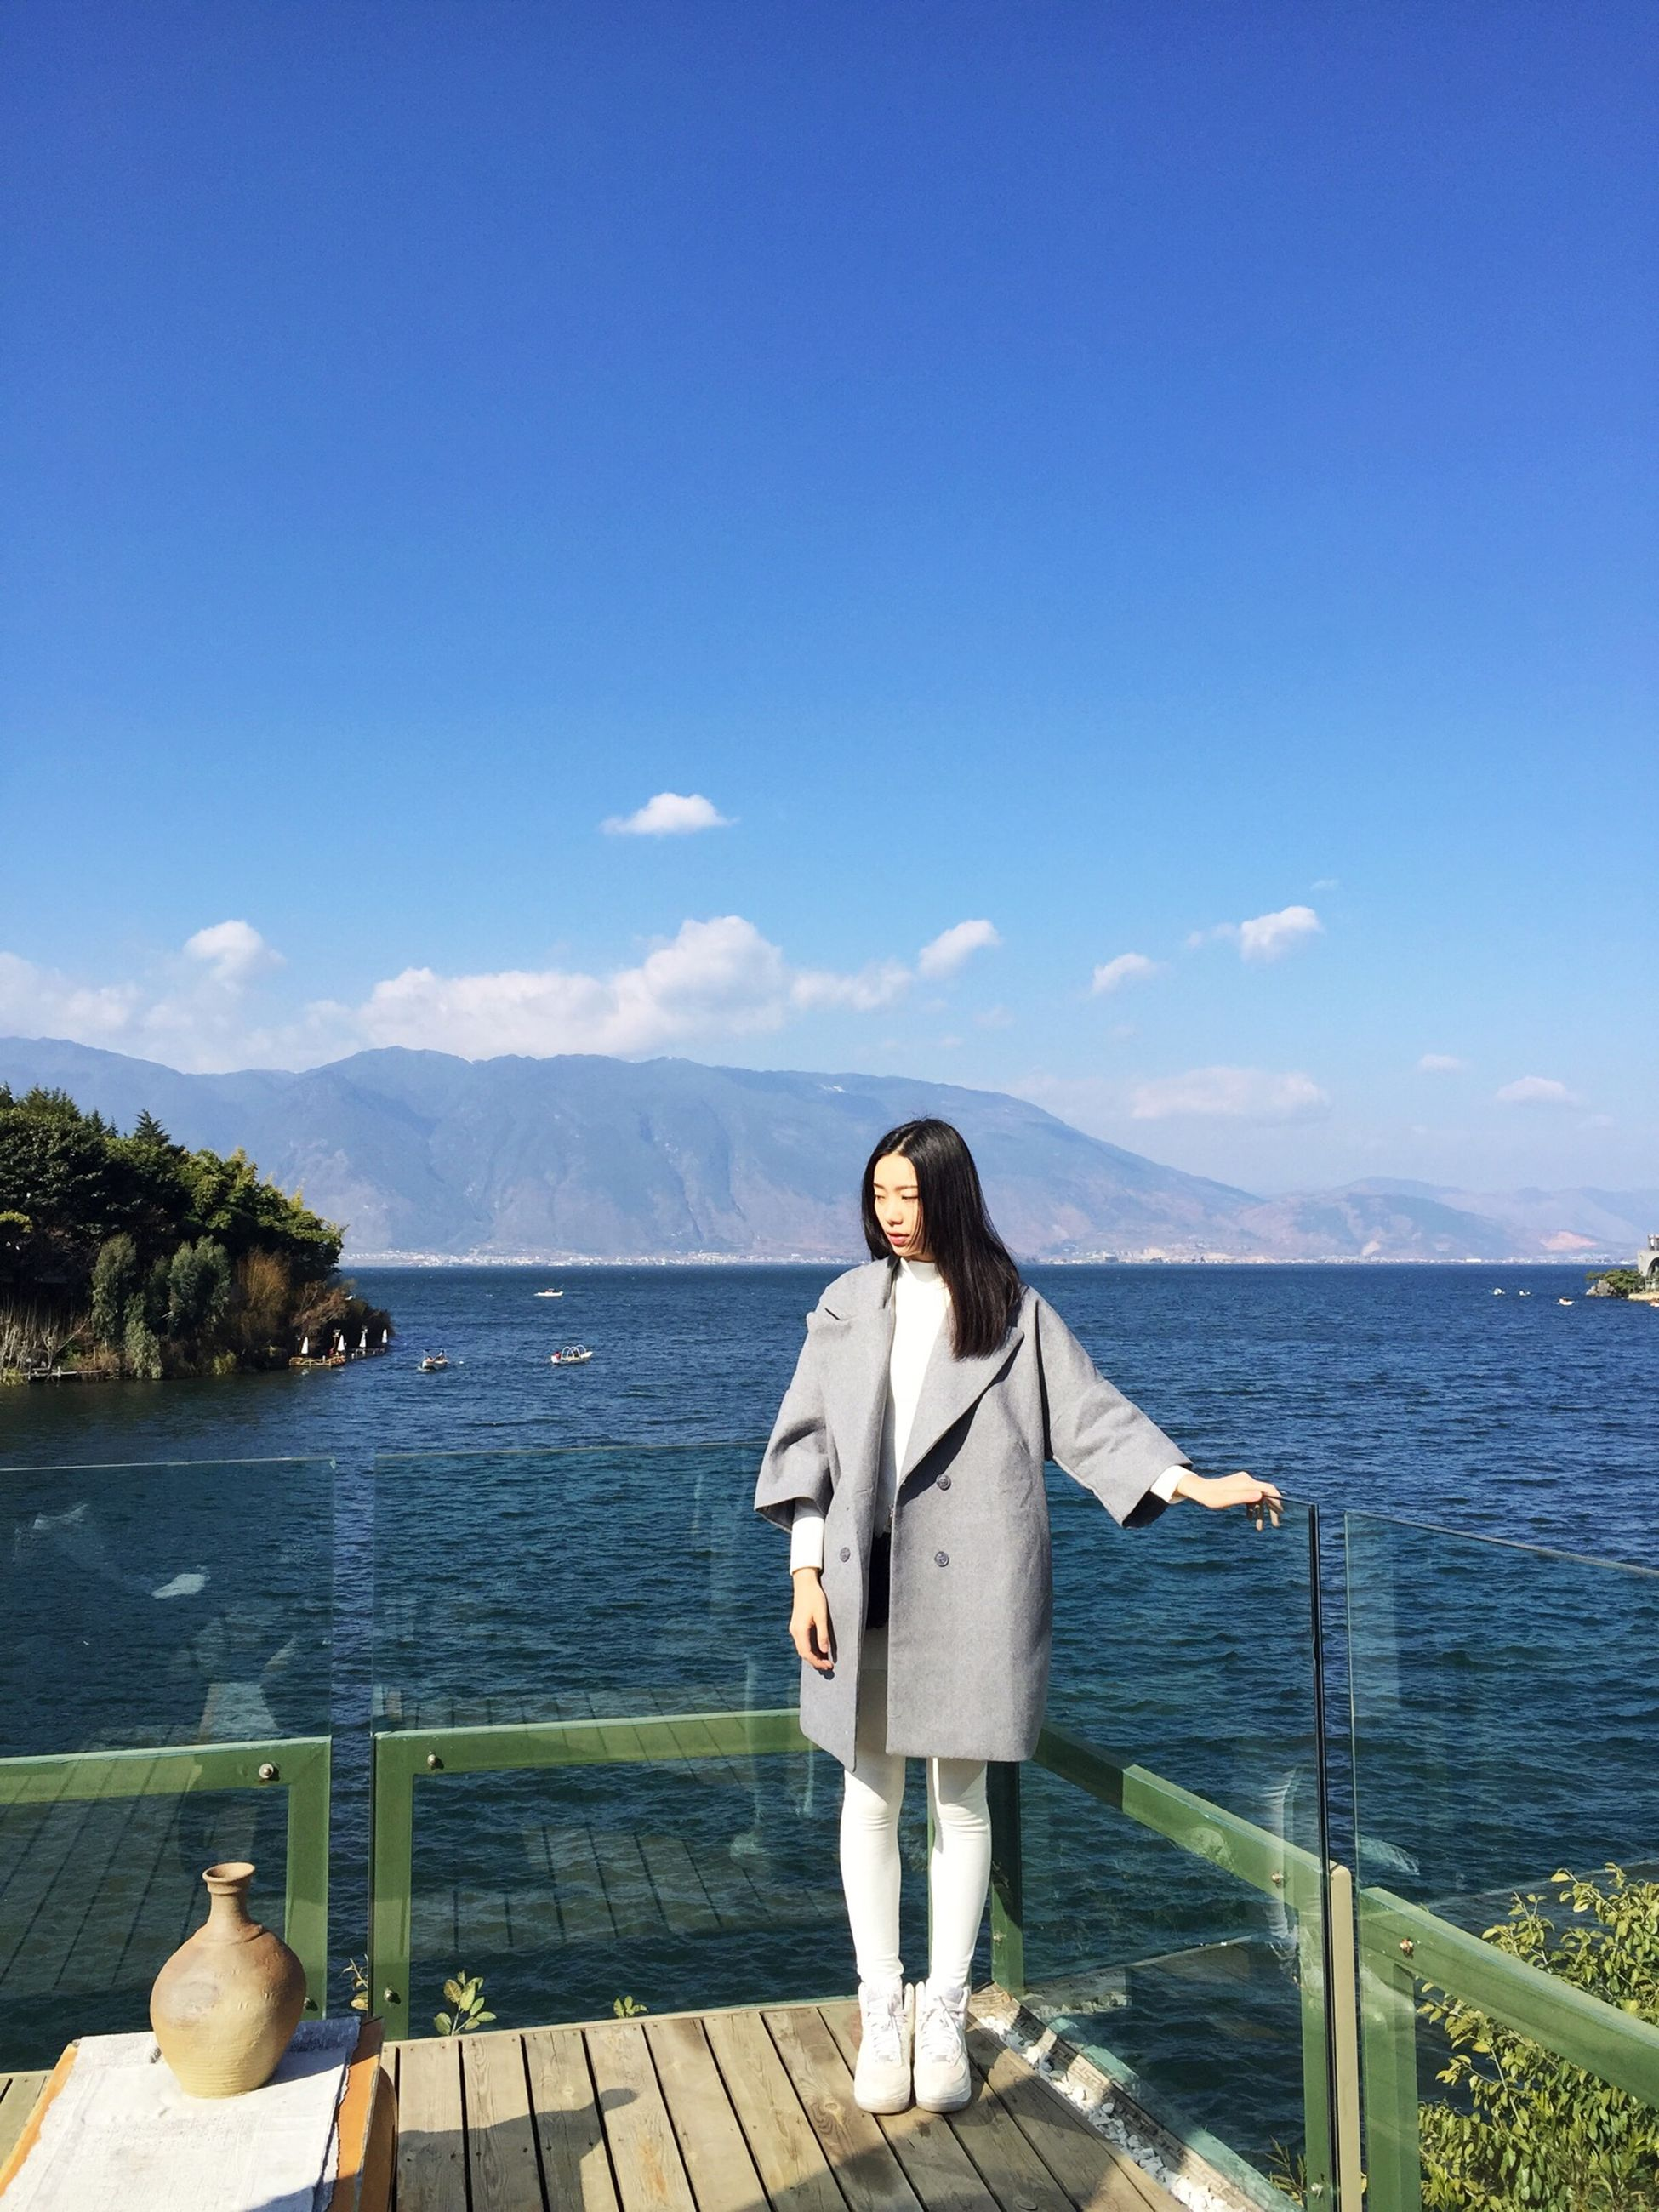 water, sea, sky, rear view, blue, lifestyles, leisure activity, railing, scenics, nature, standing, tranquility, beauty in nature, casual clothing, tranquil scene, full length, mountain, sitting